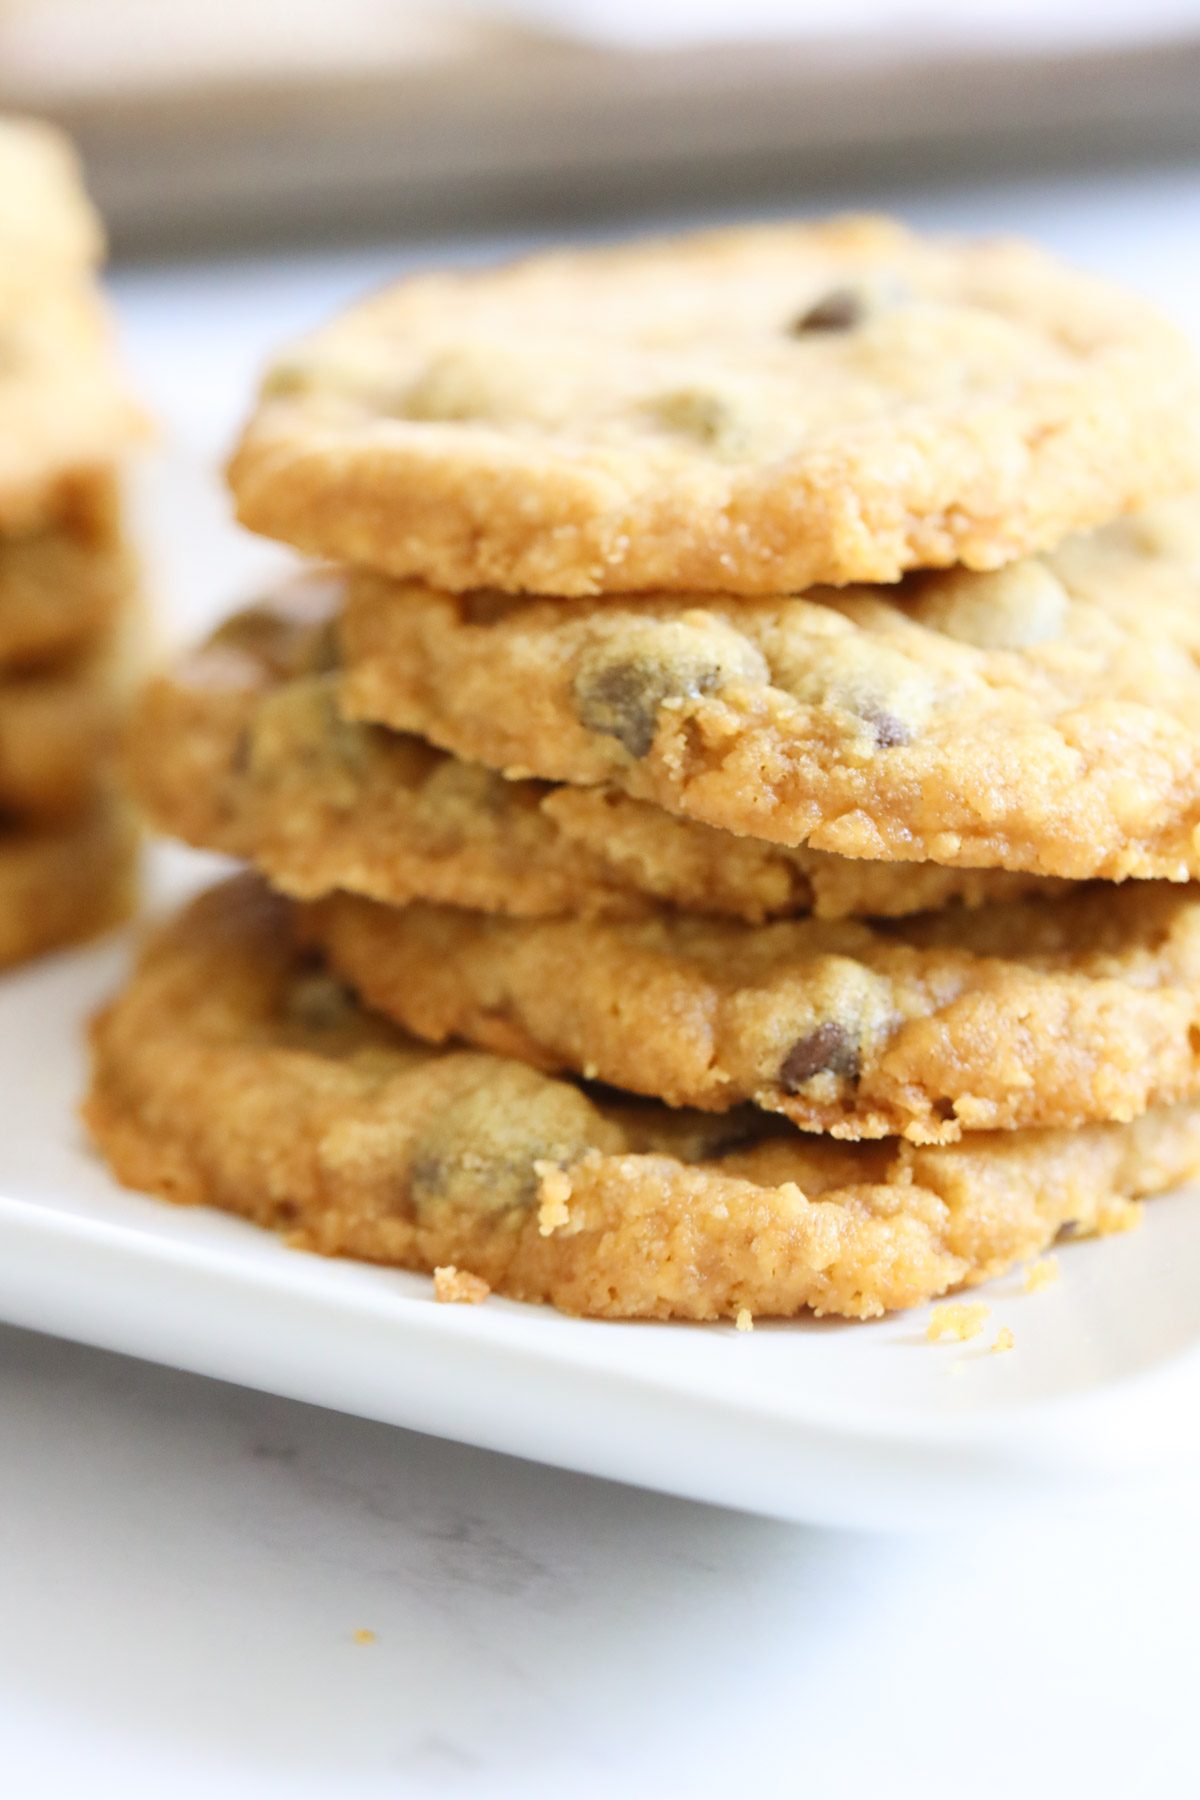 Stack of cookies on a plate